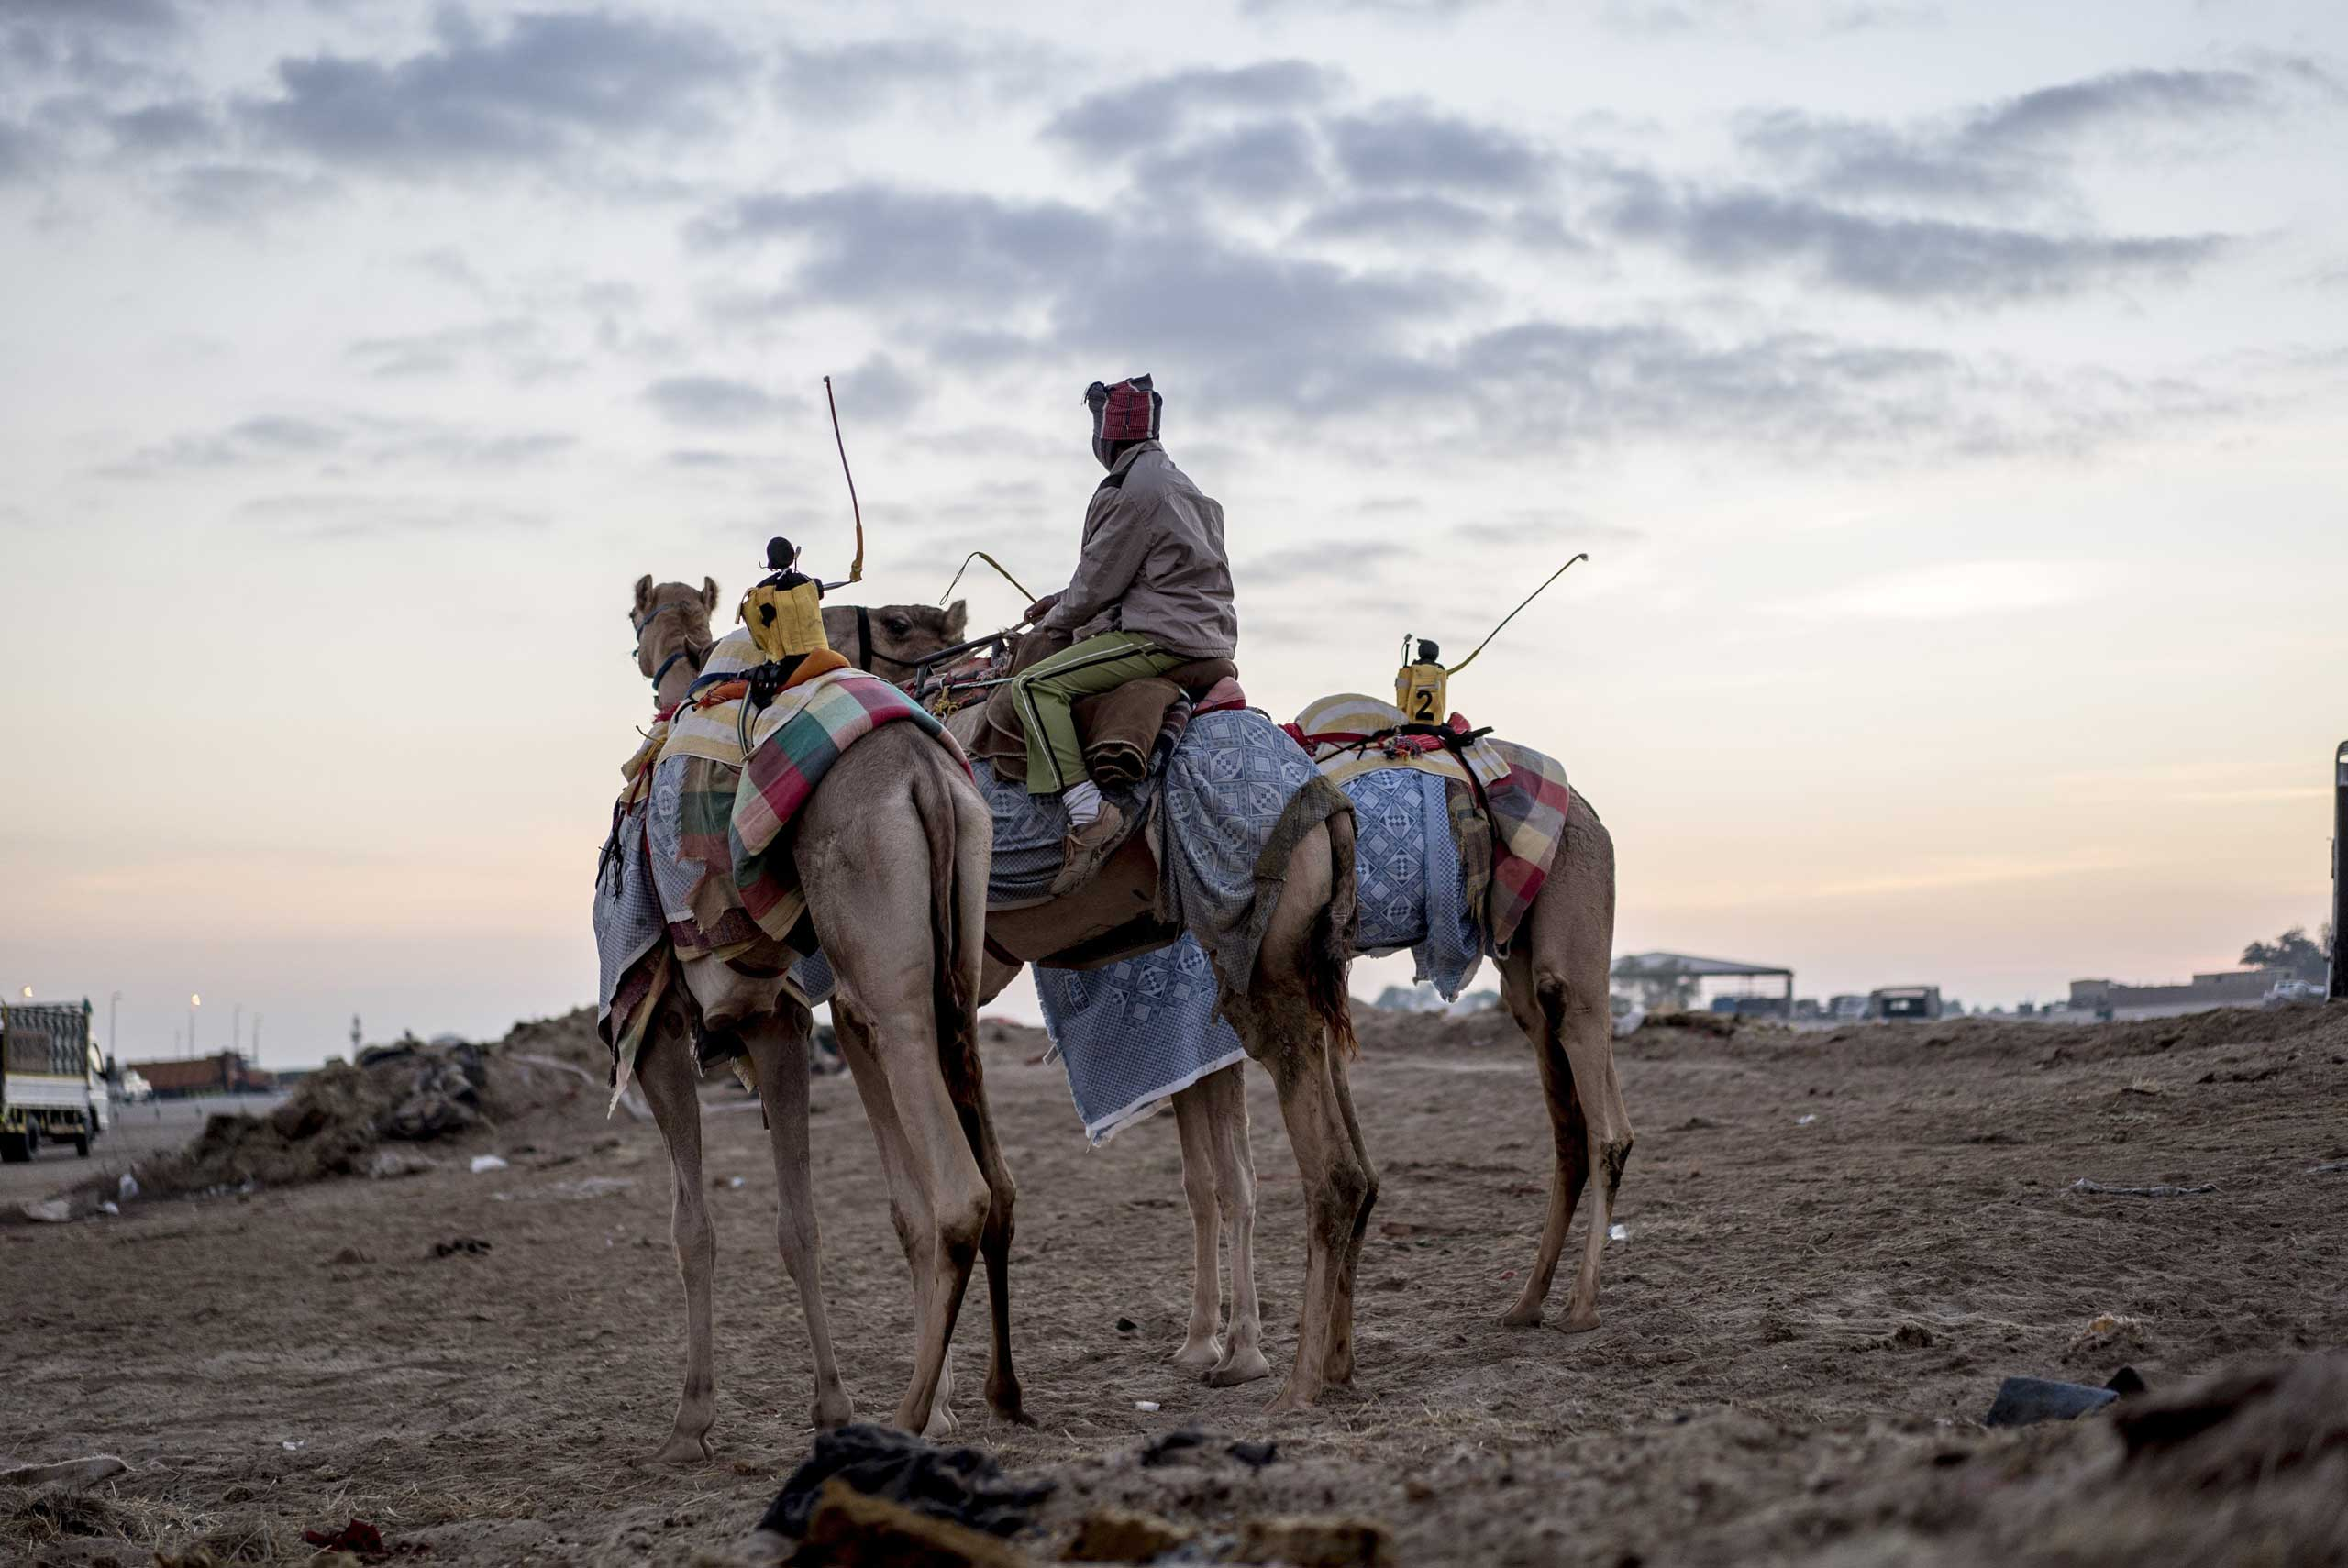 The New York Times: An Ancient Pastime With a Modern TwistA camel rider alongside two camels equipped with robot jockeys before a race in Abu Dhabi, United Arab Emirates, Dec. 3, 2014.